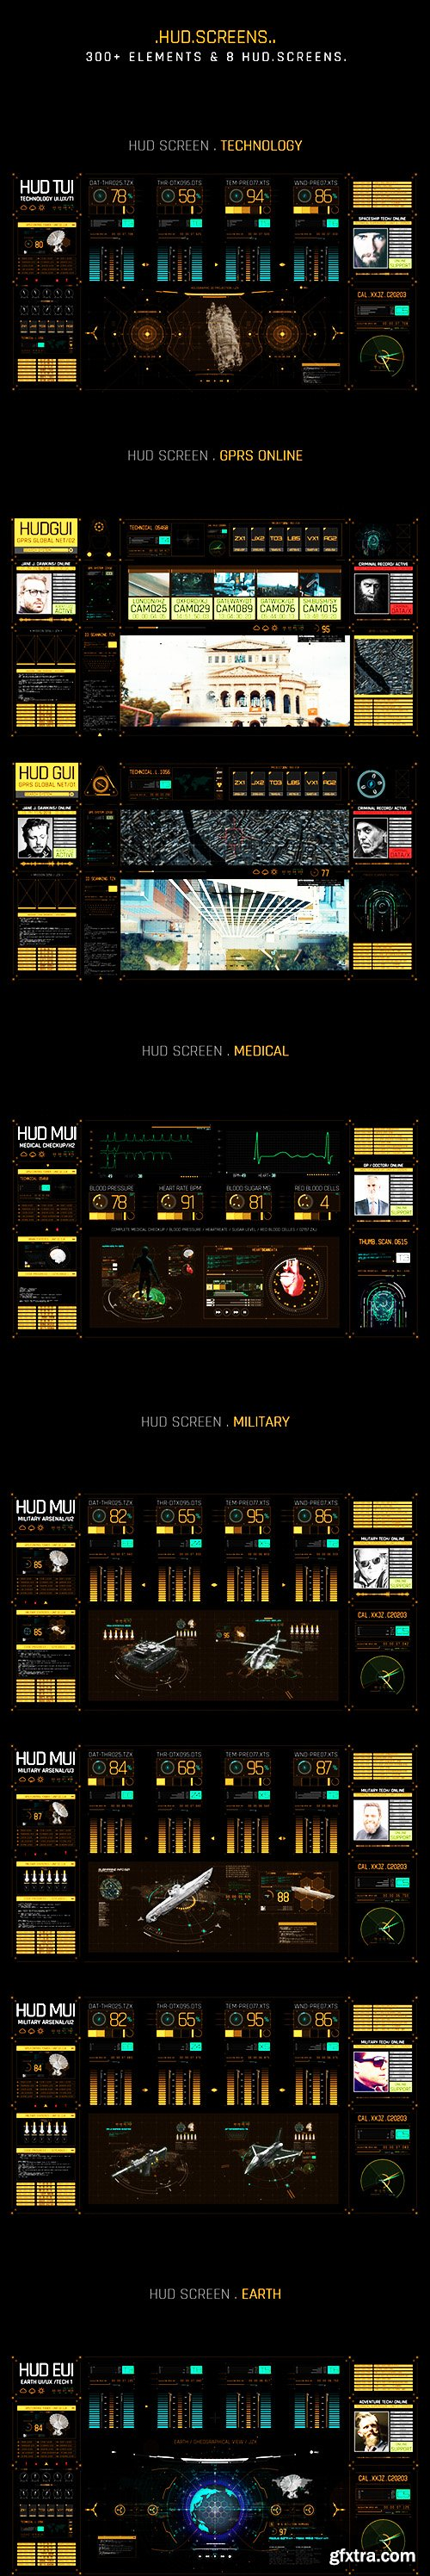 Videohive HUD Screens 22837246